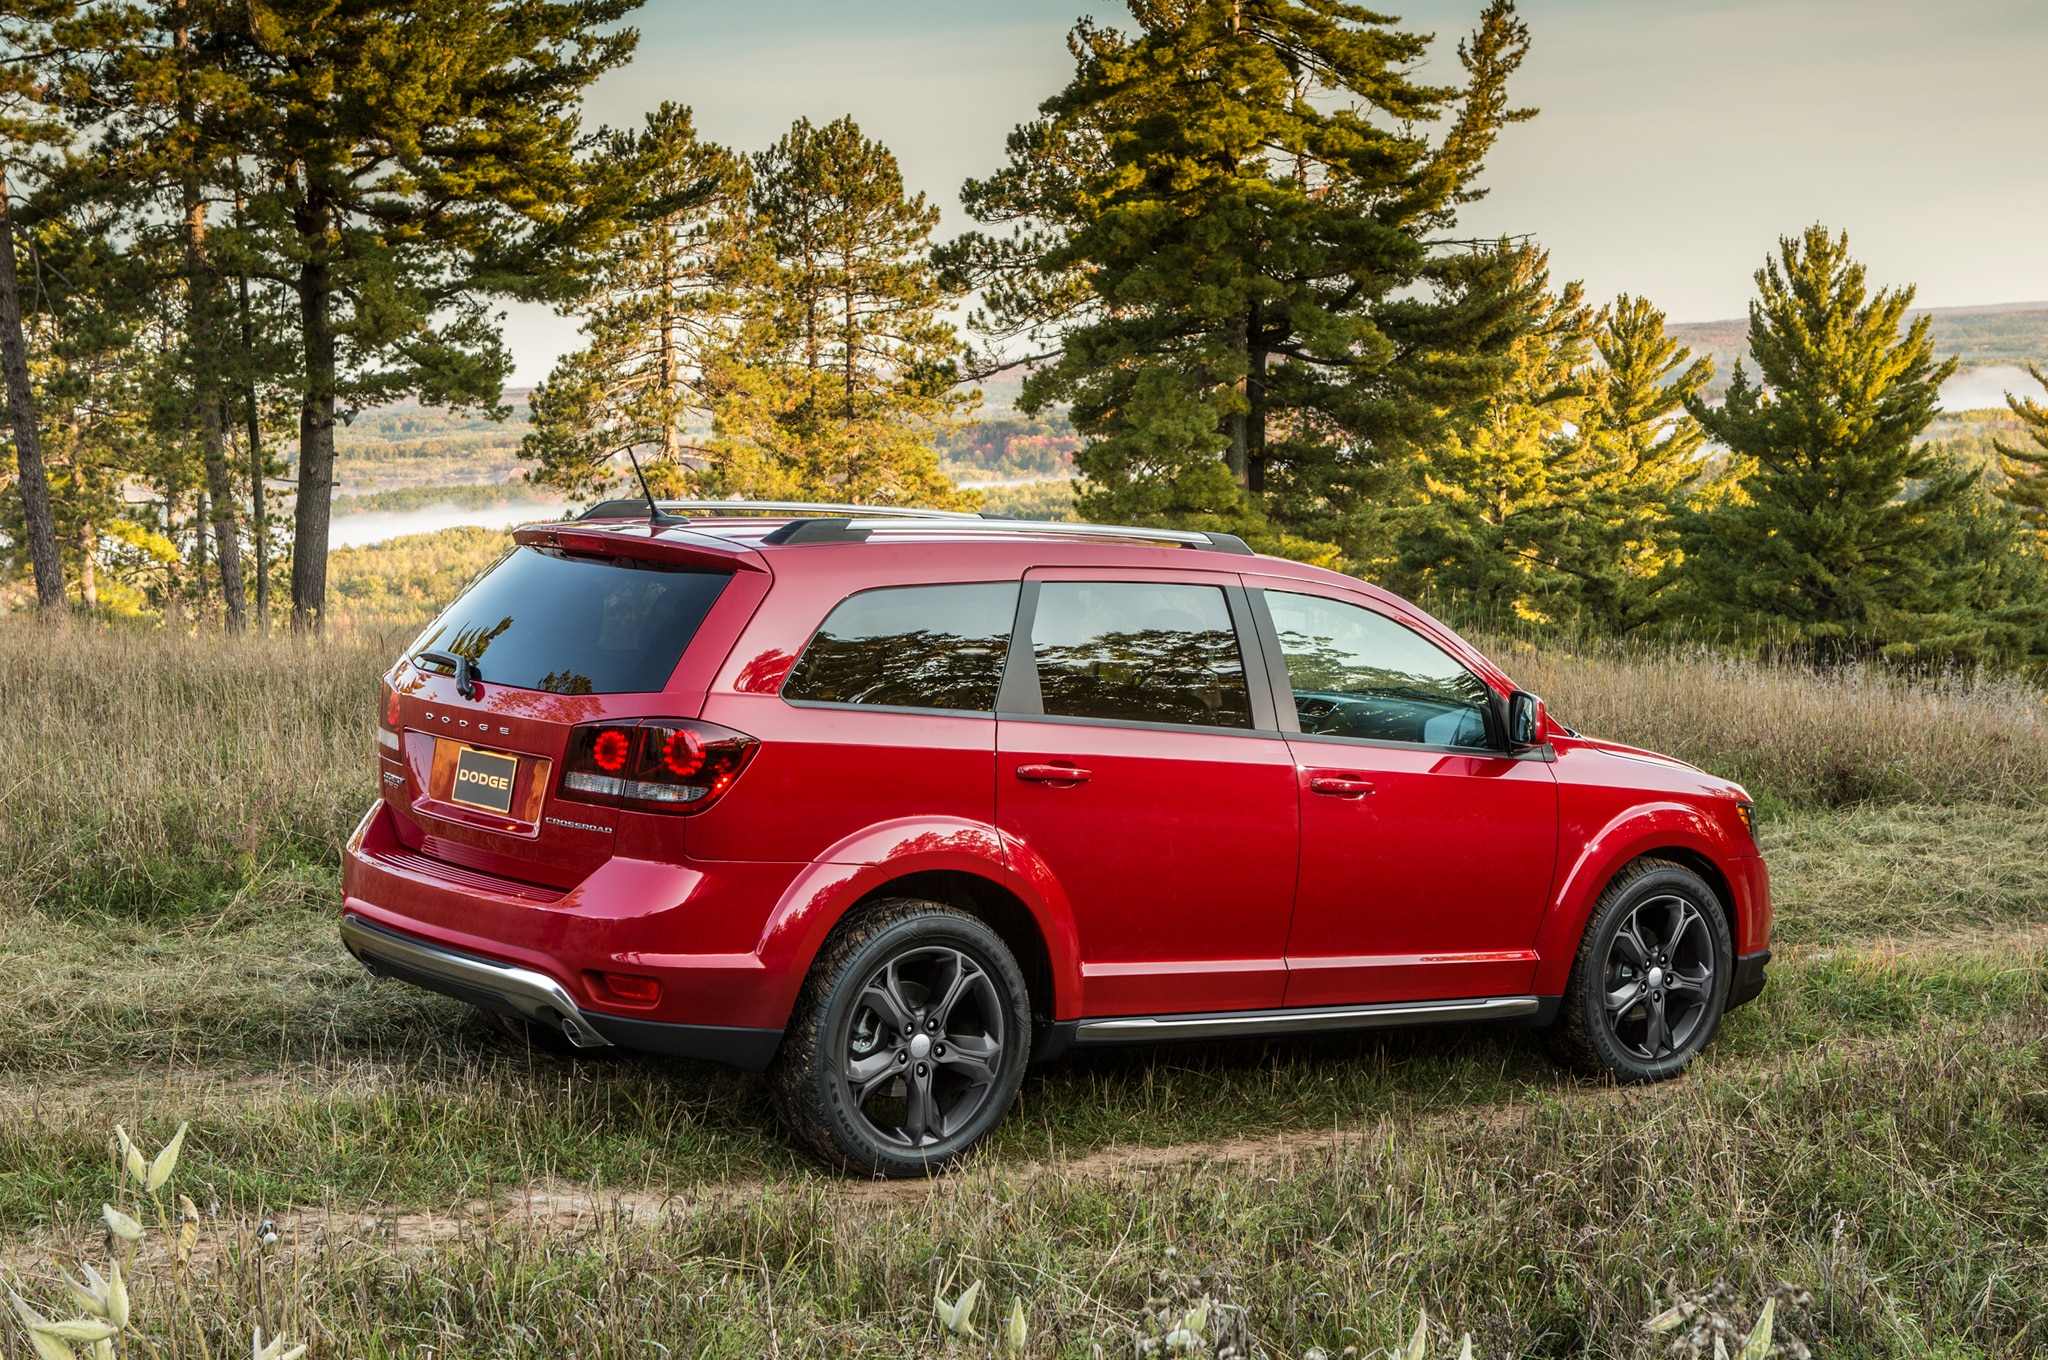 2014 dodge journey crossroad to debut at 2014 chicago auto show